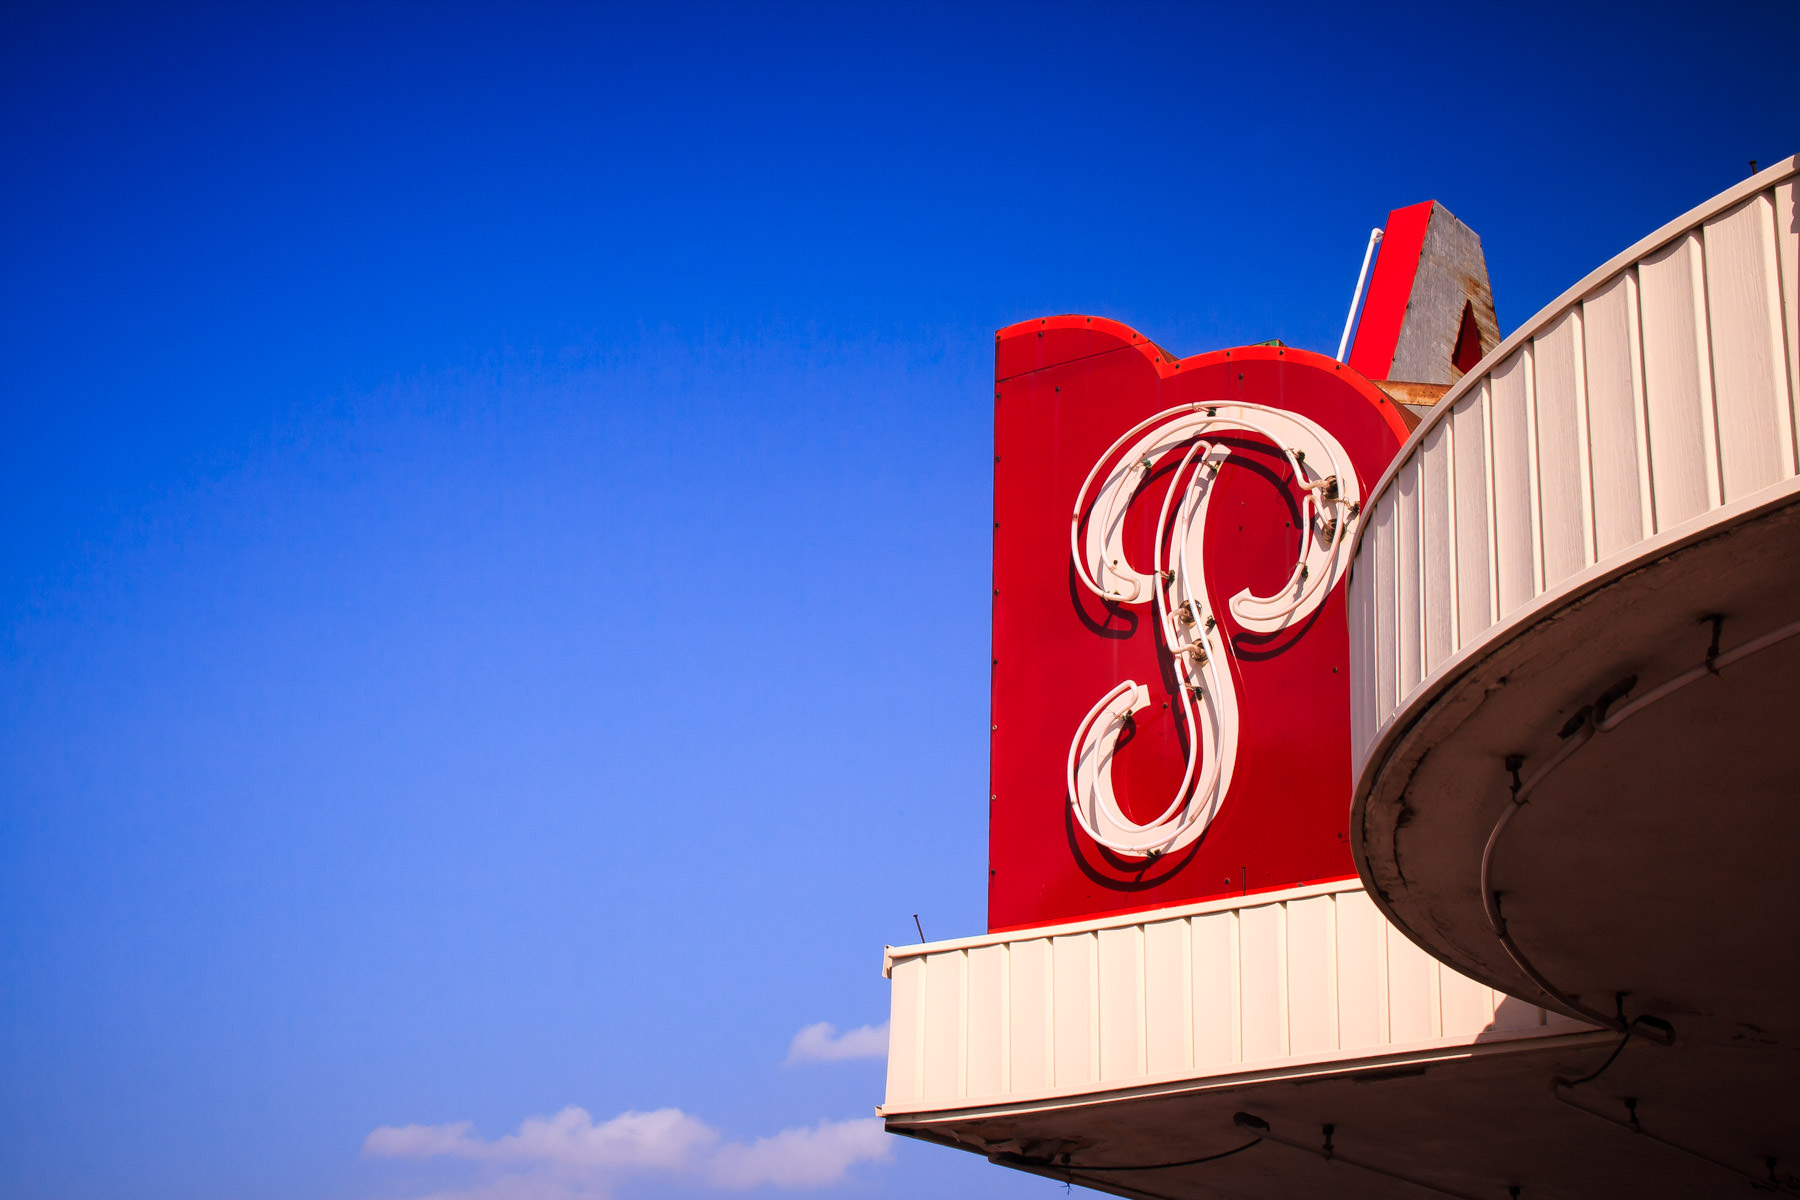 The sign at the Plaza Theatre in Carrollton, Texas.